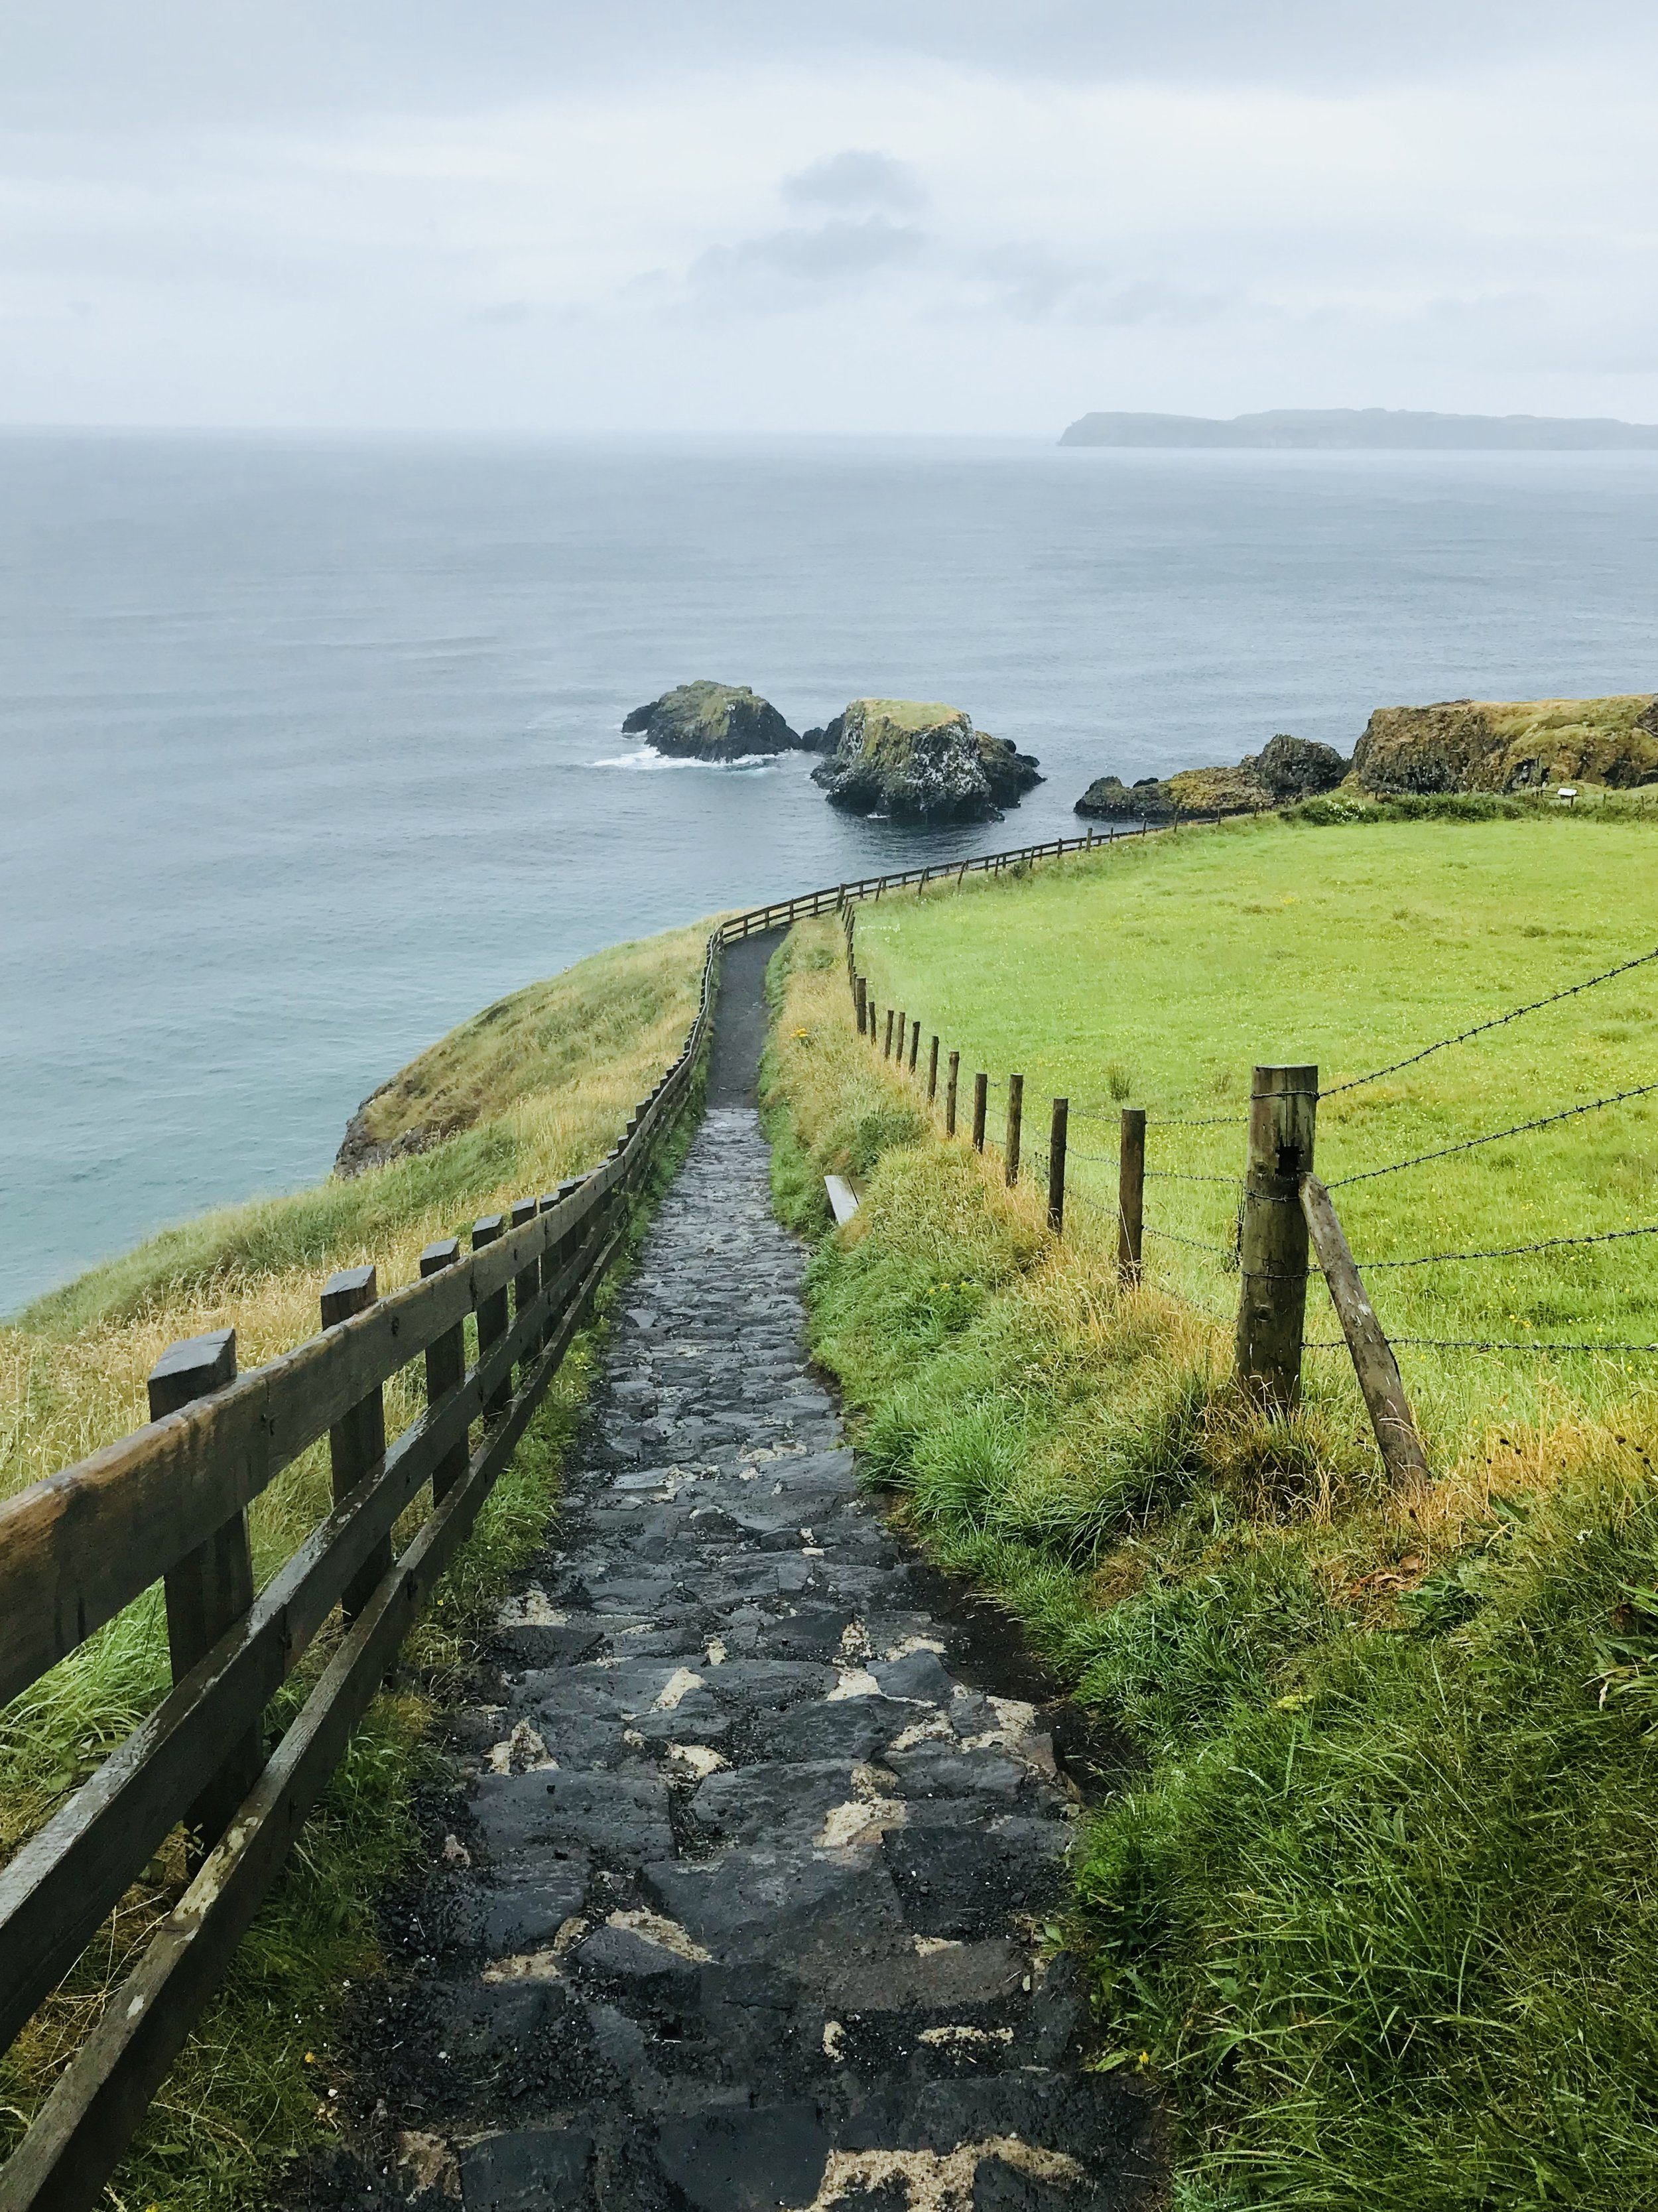 The Walk to Carrick-a-Rede Bridge